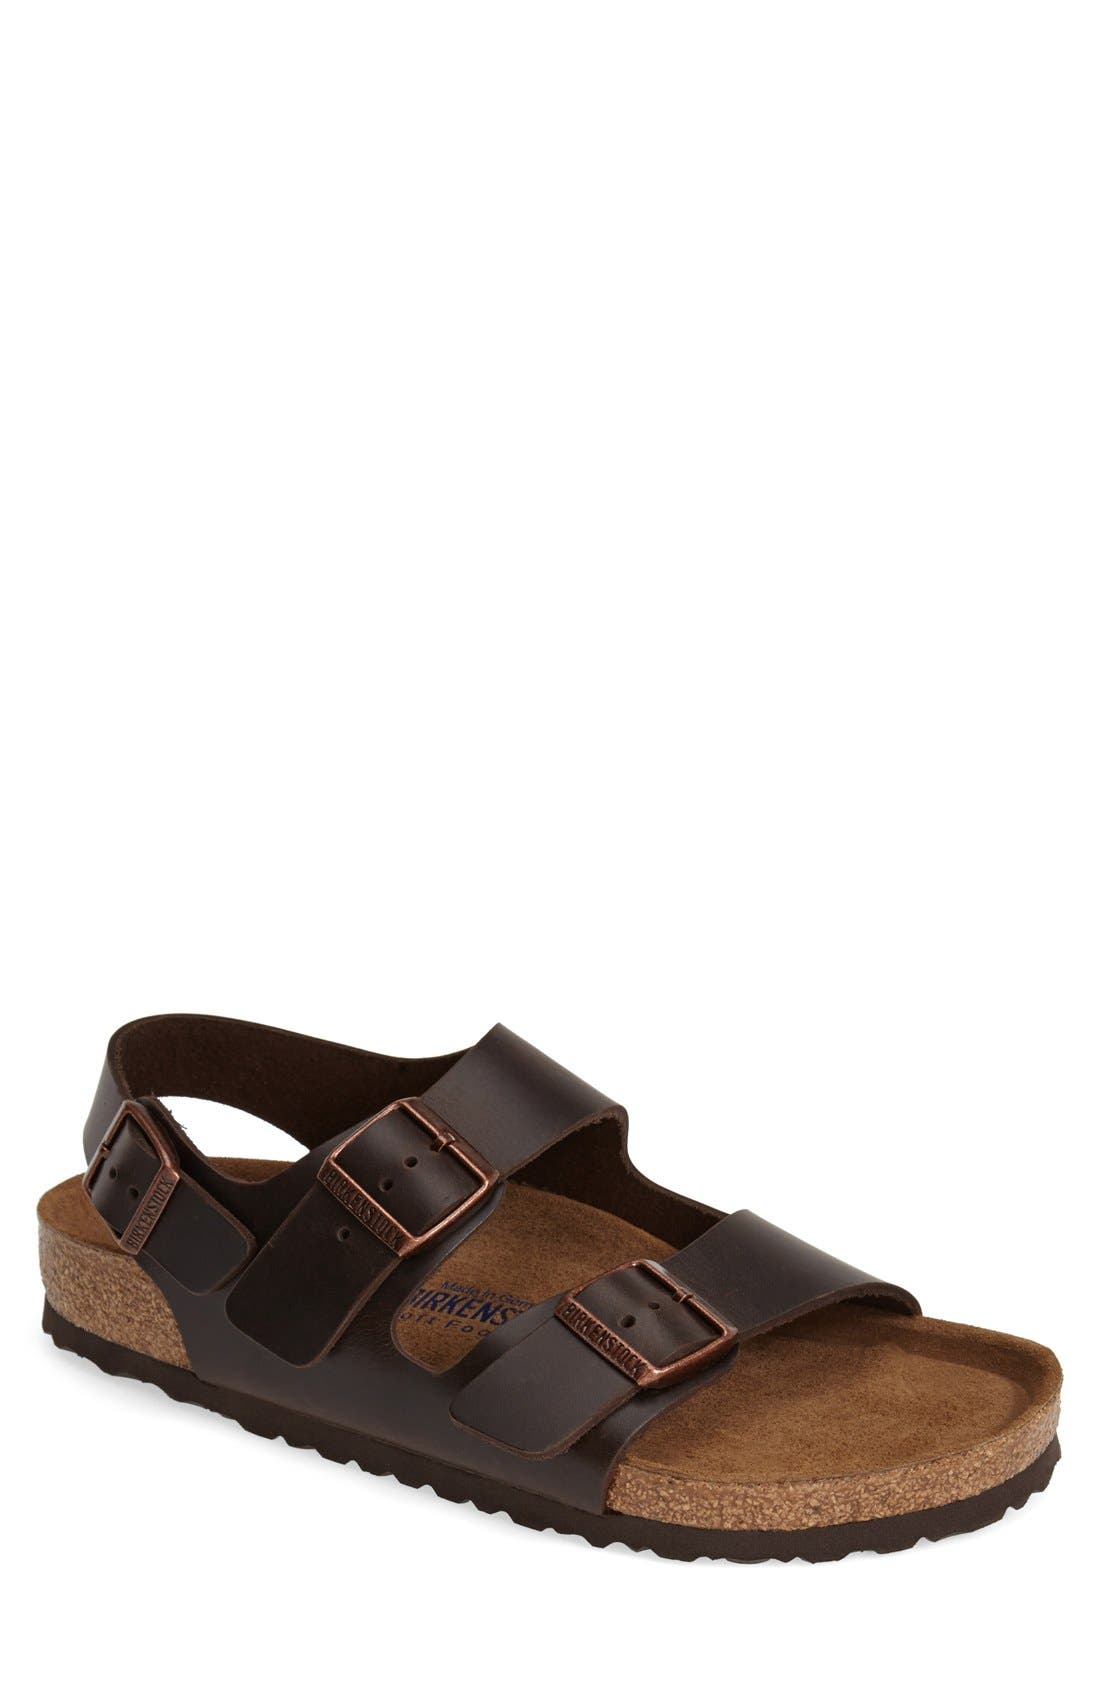 Main Image - Birkenstock 'Milano' Soft Footbed Sandal (Men)